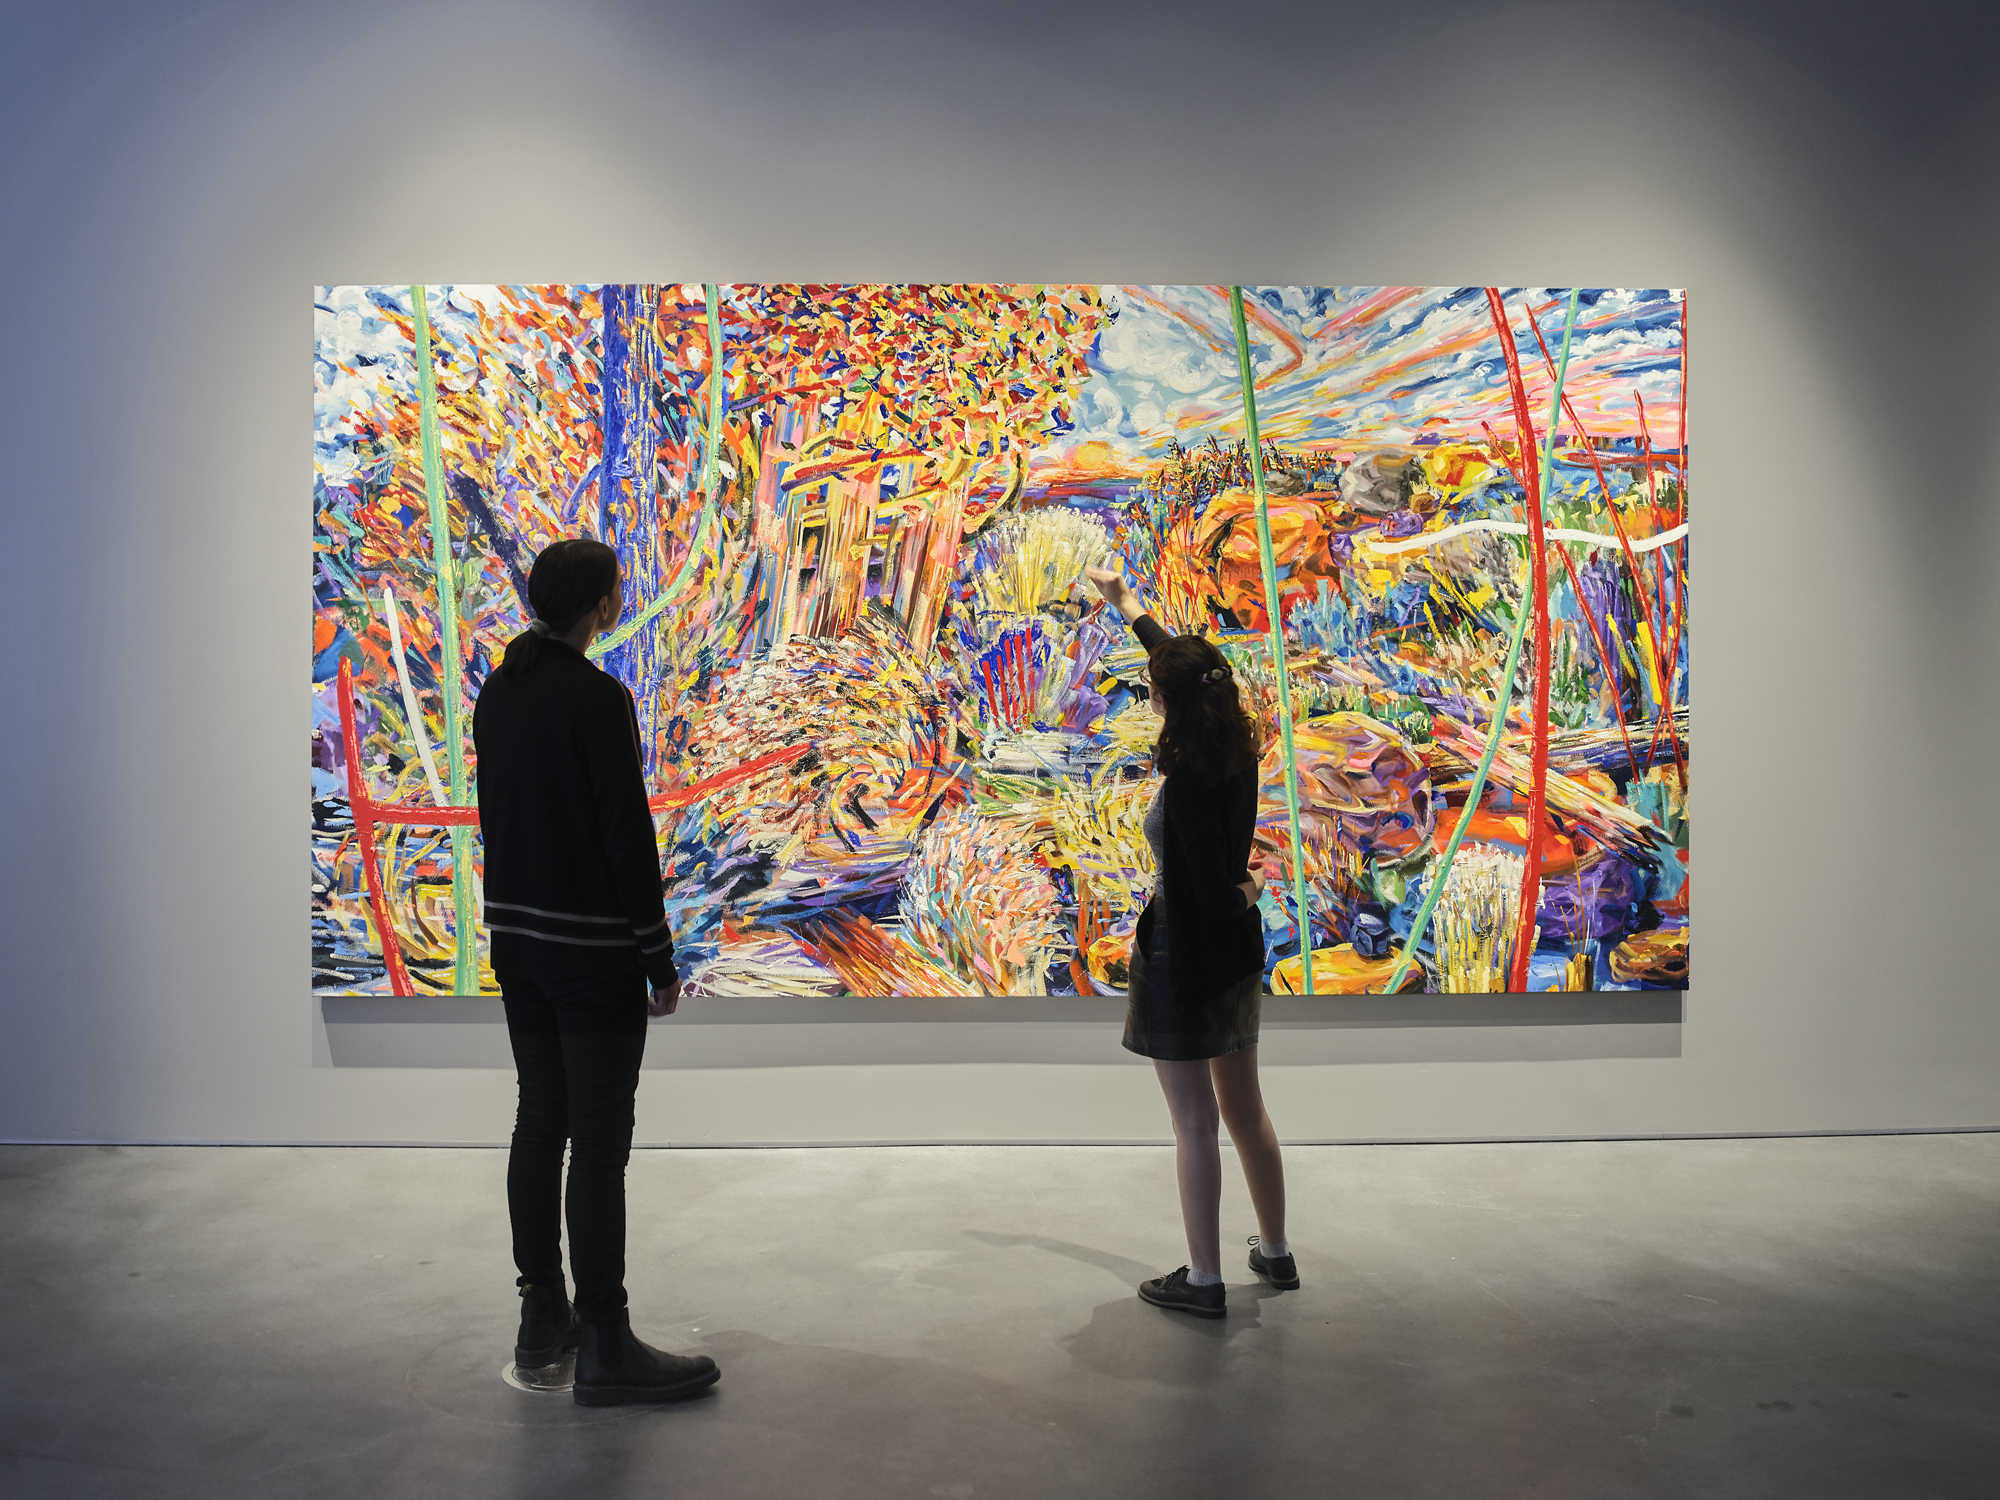 Two figures stand in front of a large abstract landscape painting in an art gallery